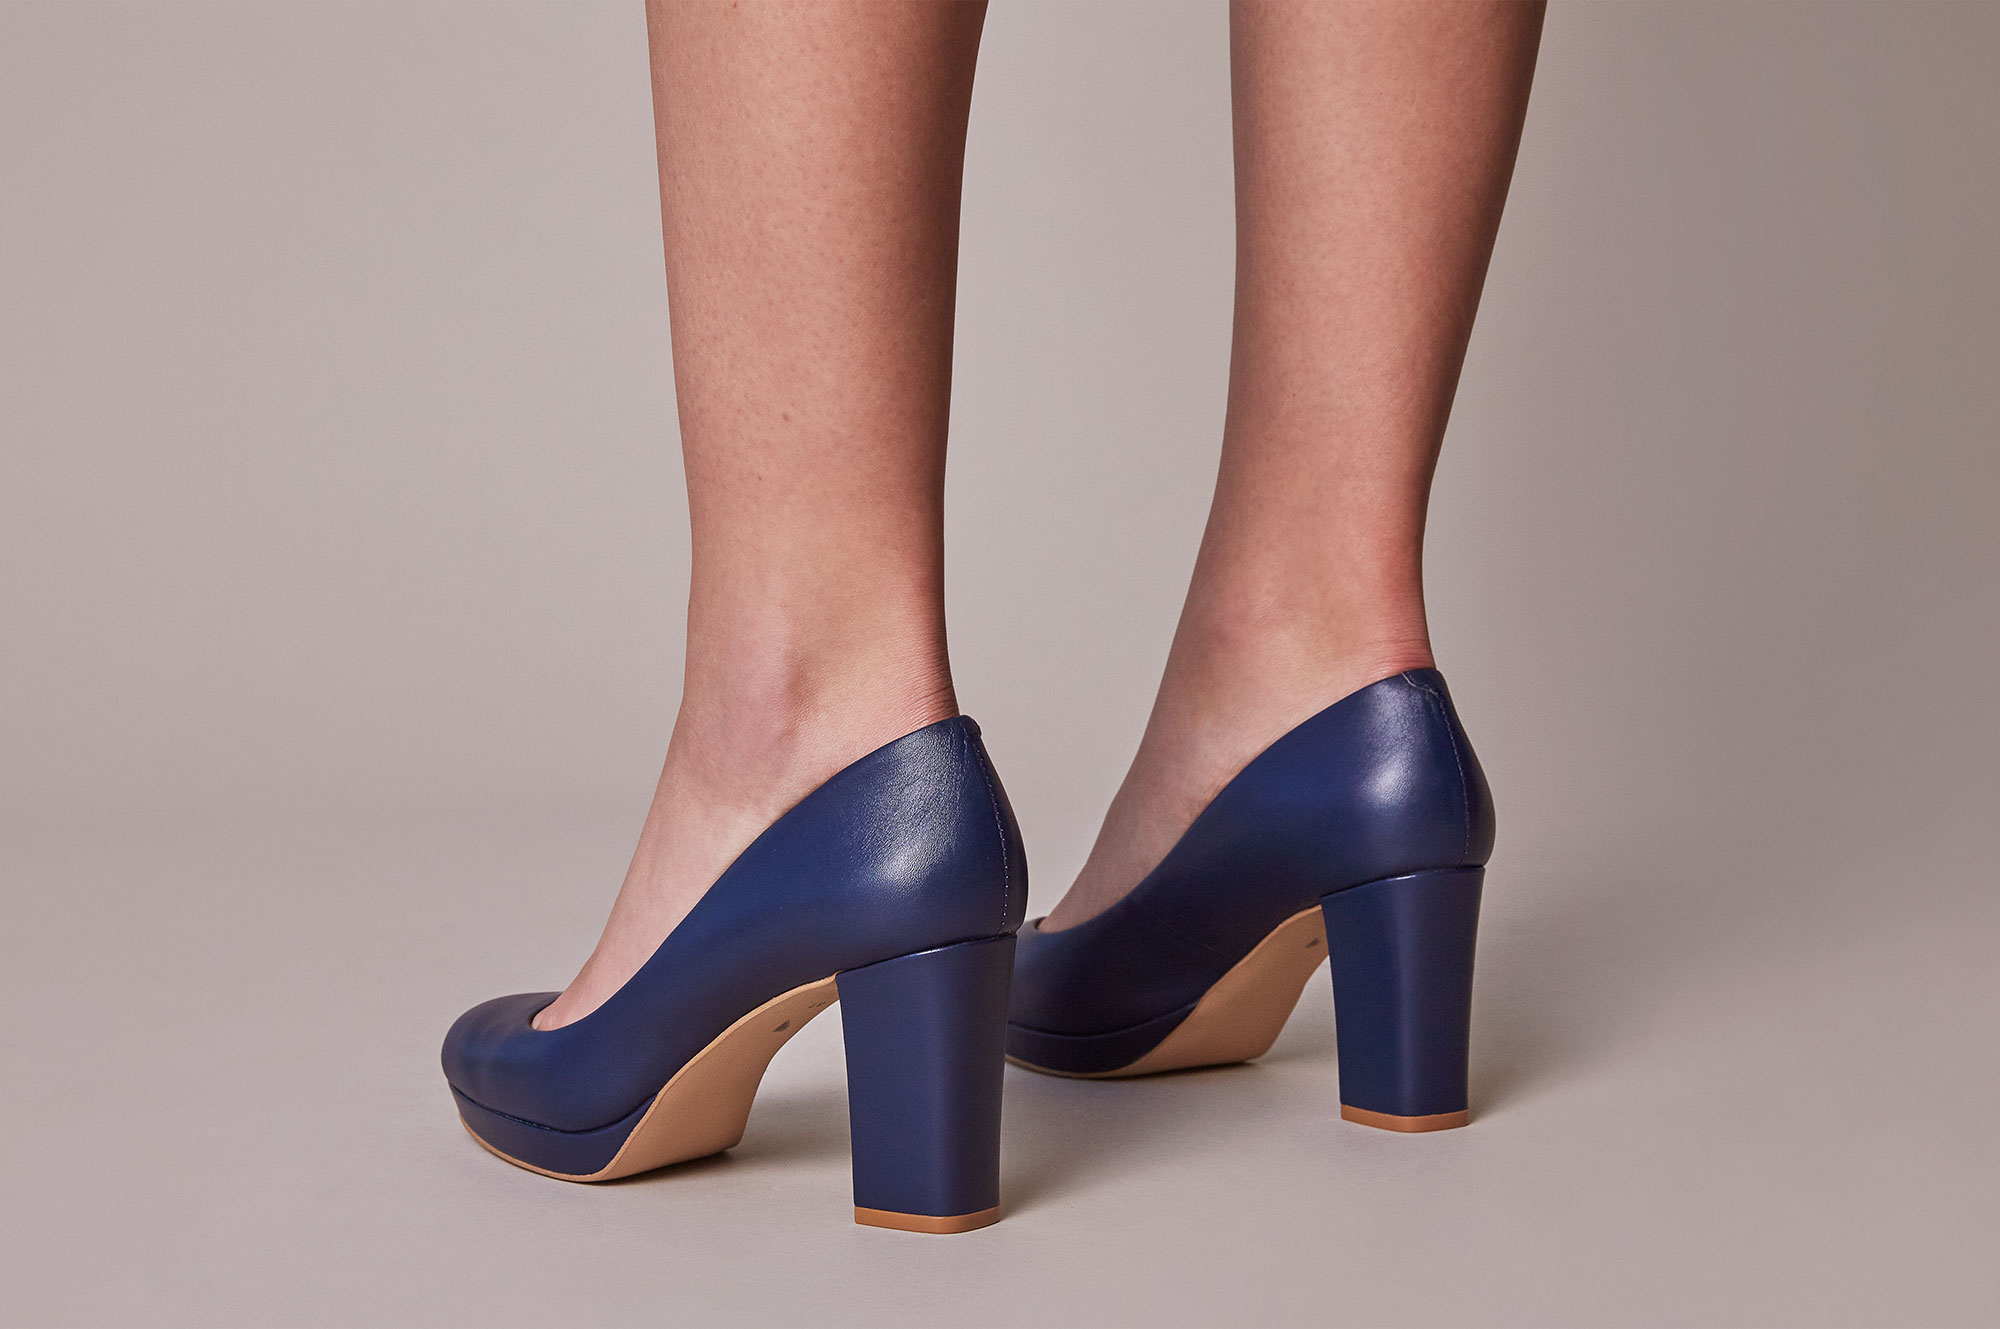 Shoes That Transform From High To Low Heels